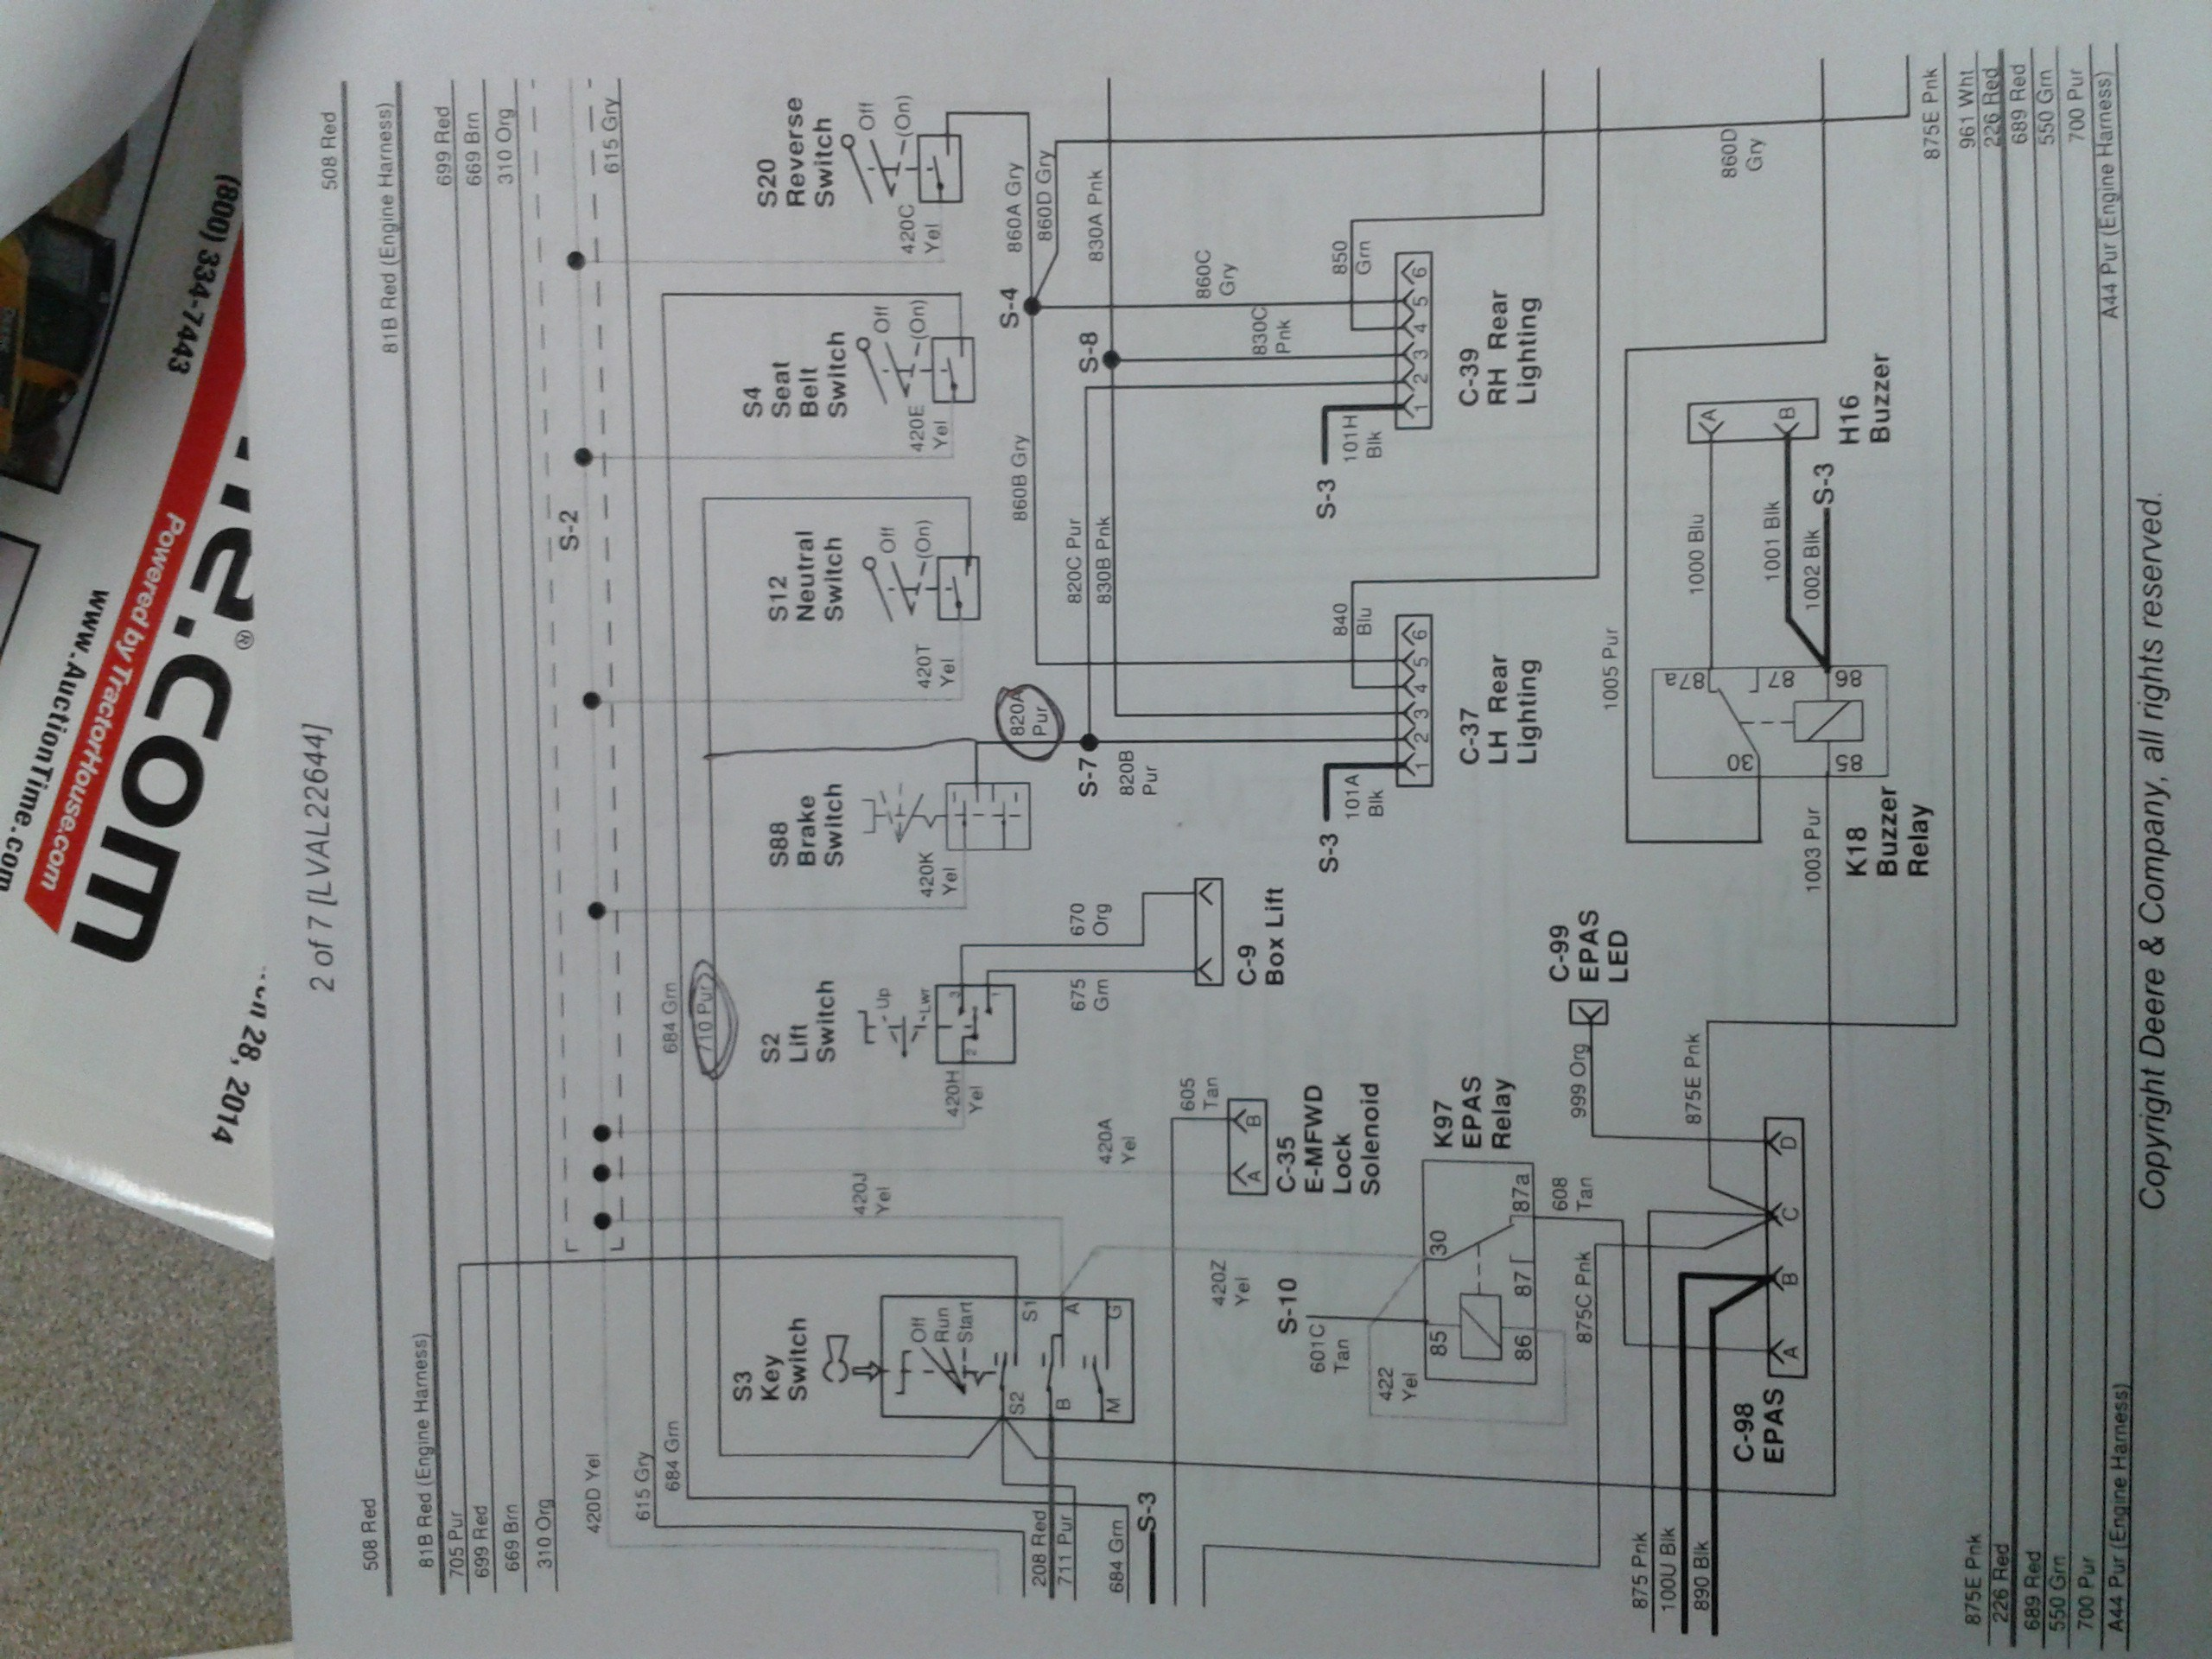 Wiring Diagram John Deere Lt155 Lt133 For 1968 210 Schematic Image